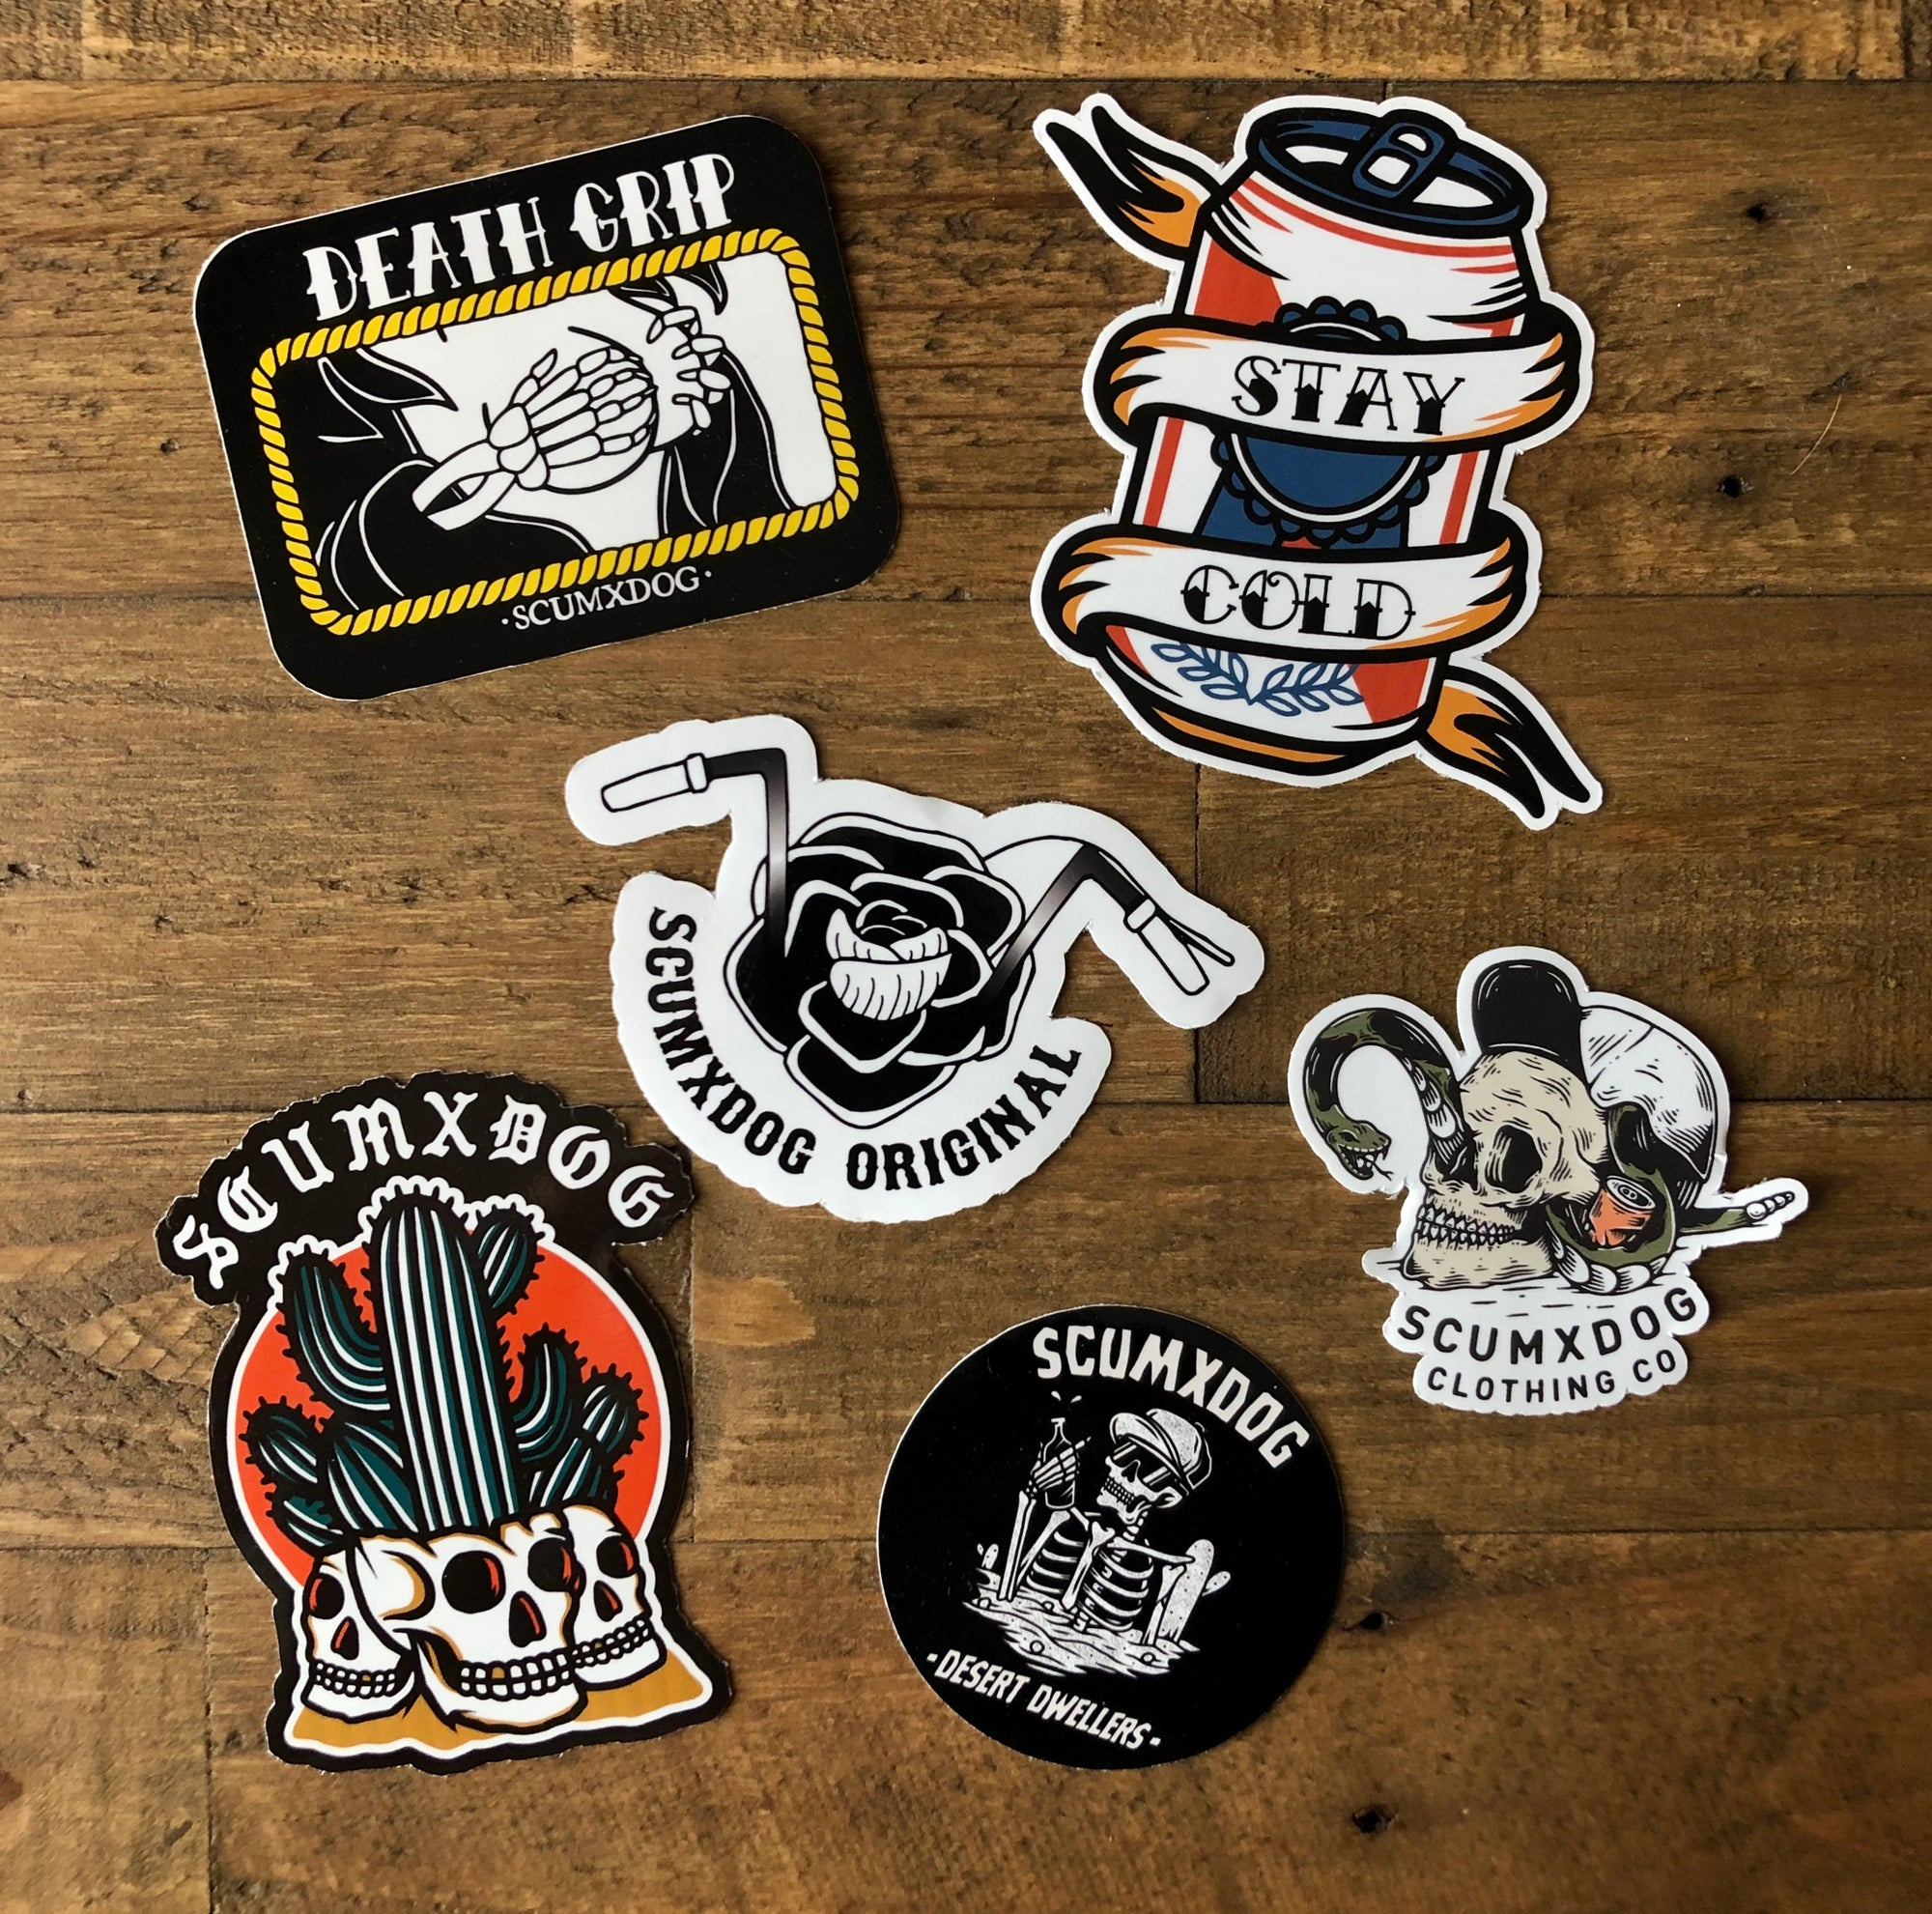 MORE INDIVIDUAL STICKERS